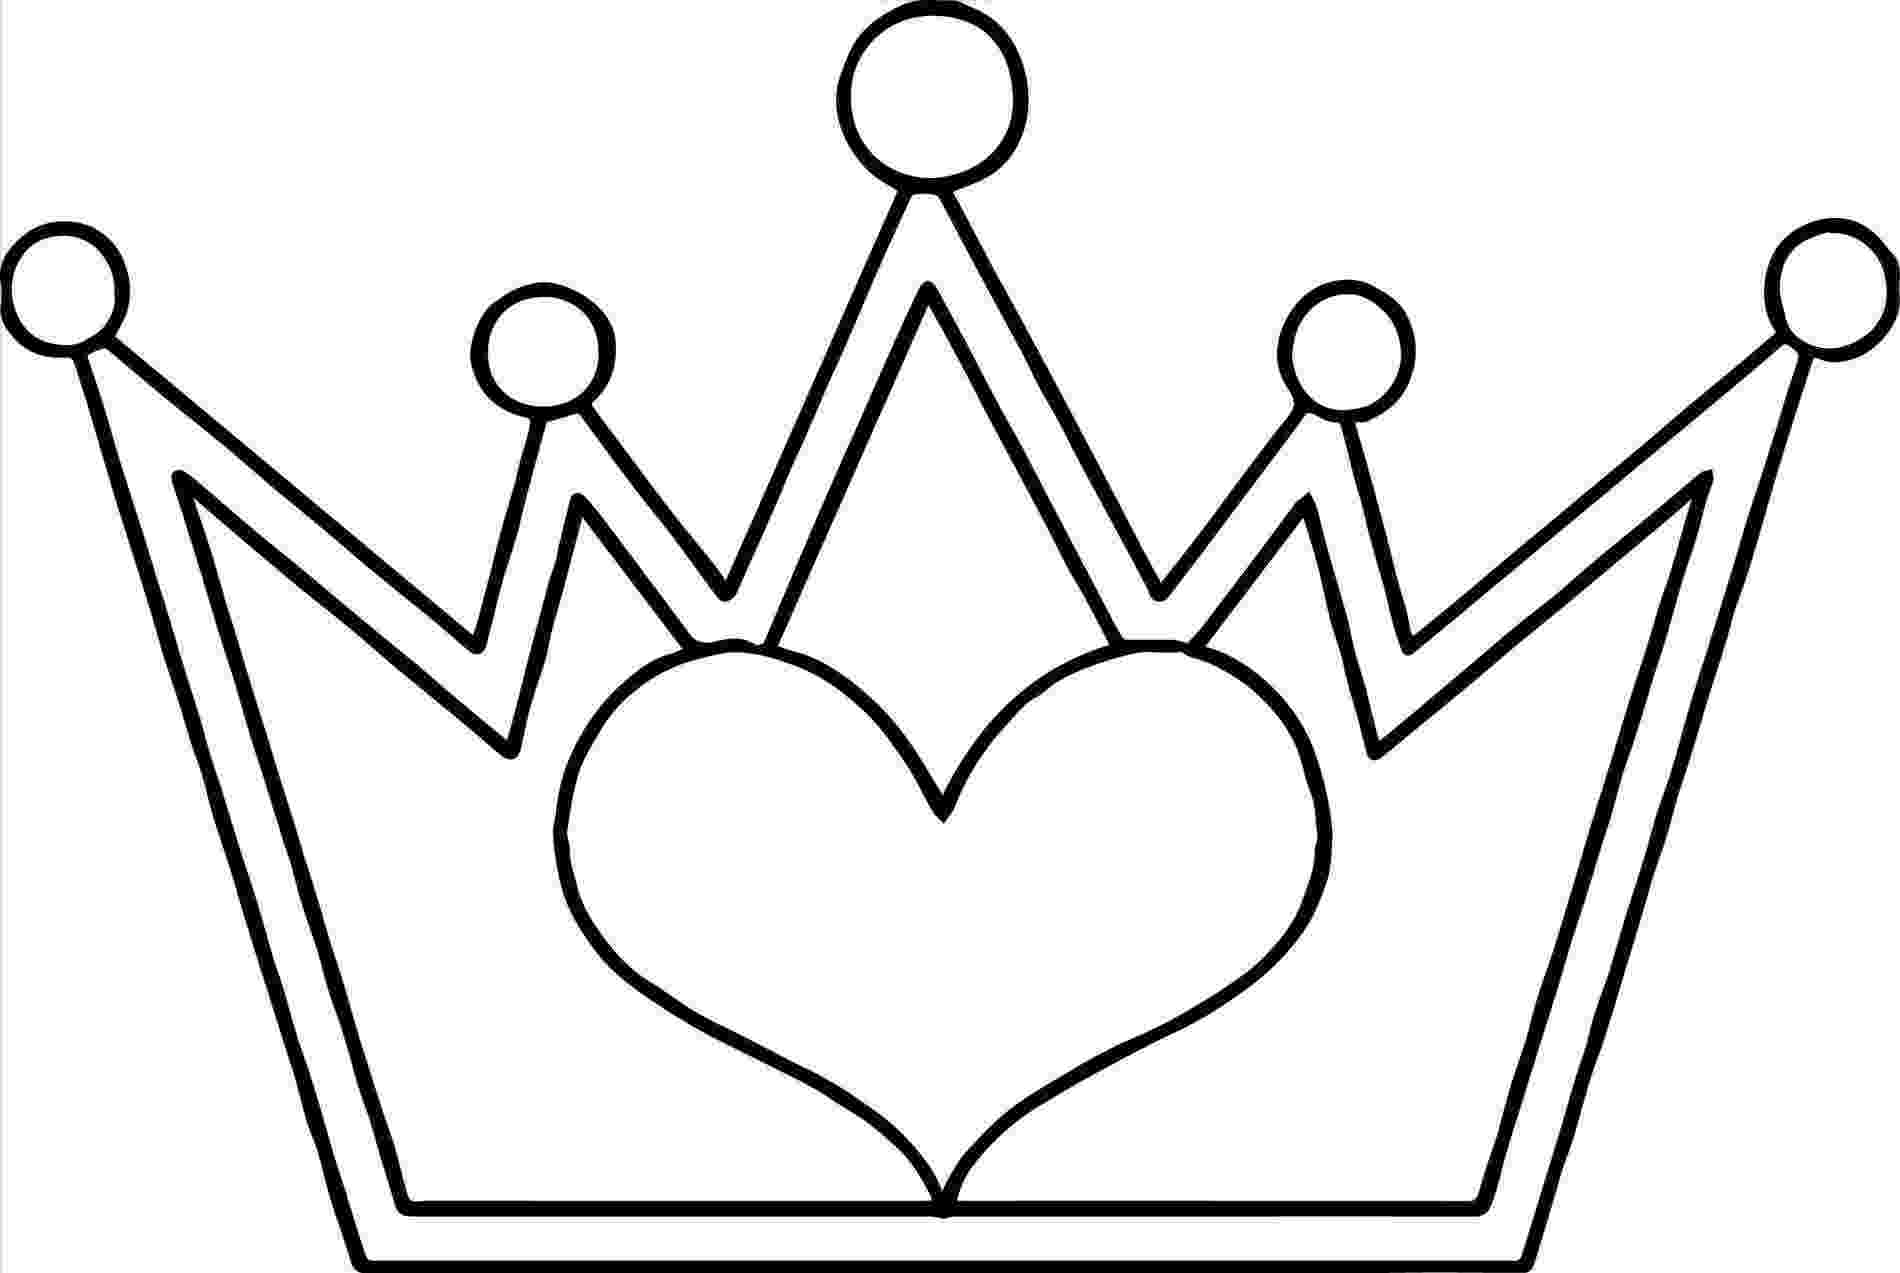 crown coloring page kings crown coloring pages clipart best coloring page crown